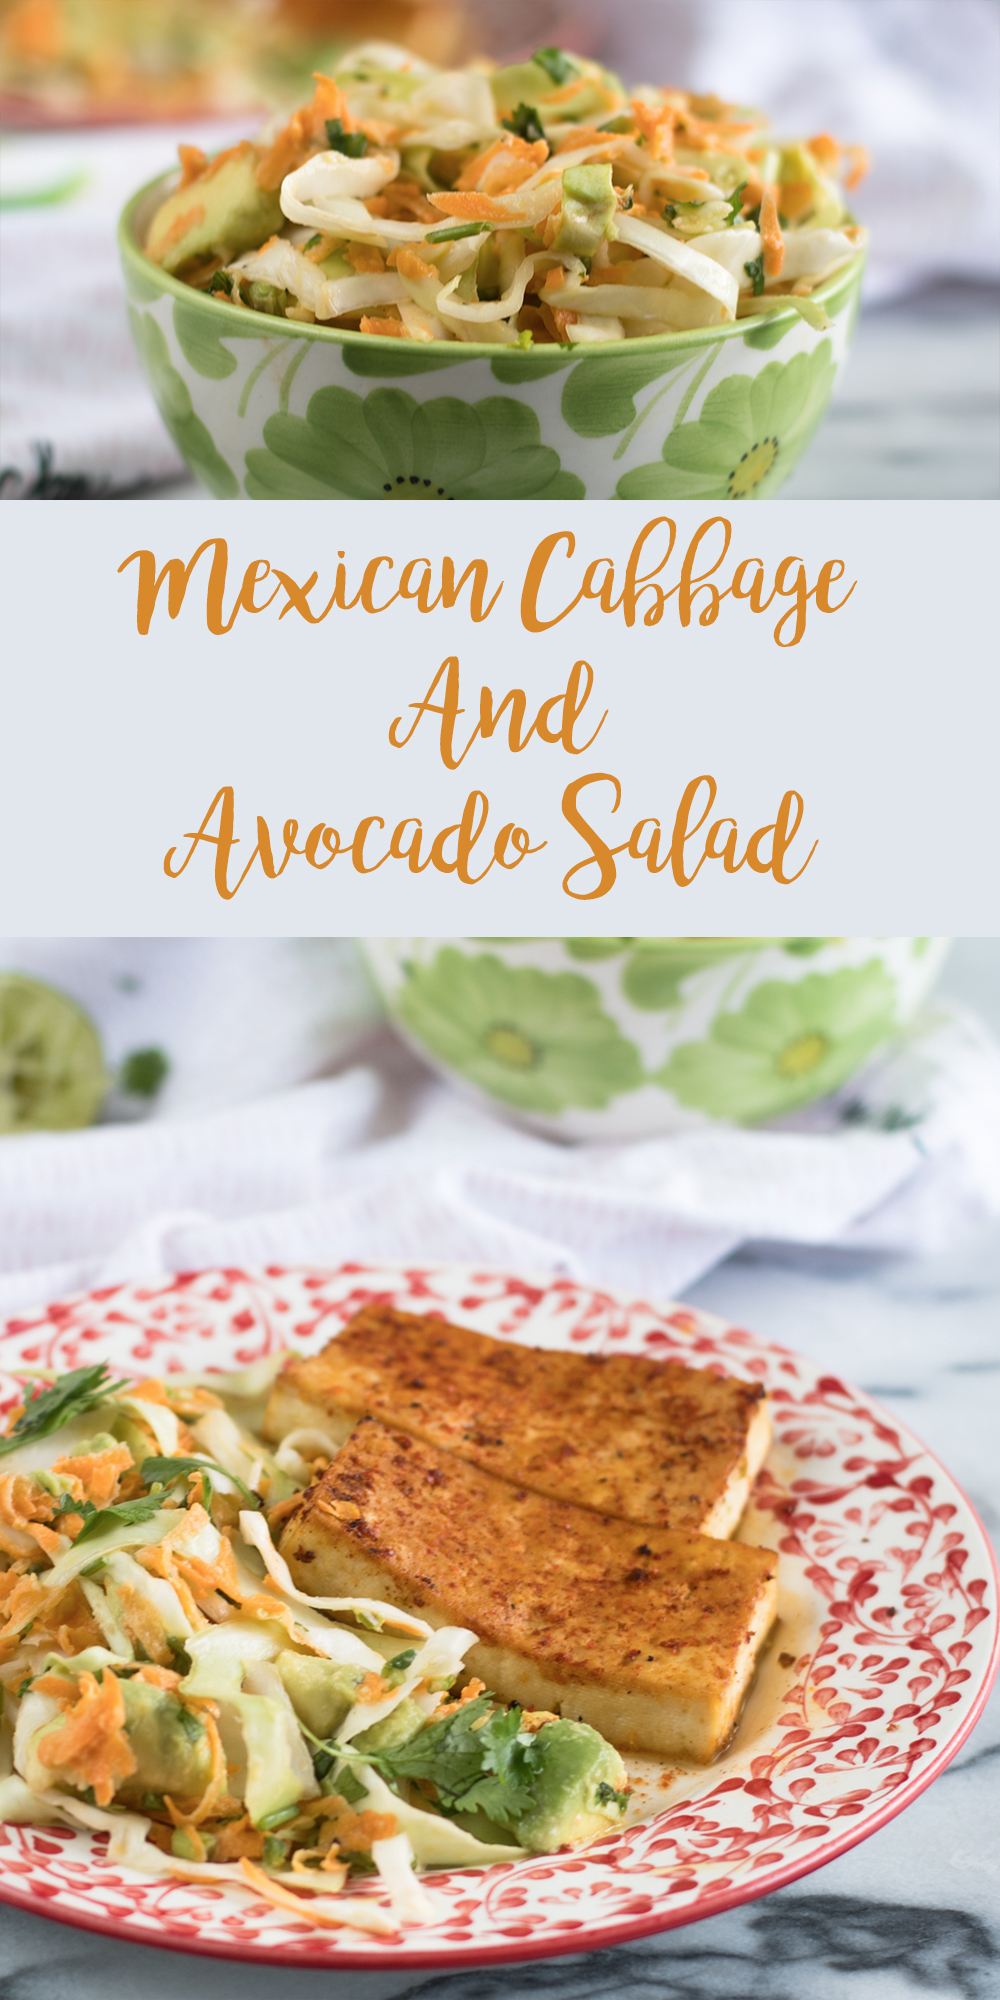 A flavorful Mexican Cabbage and Avocado Salad. This simple salad is bursting with bright flavor. #salad #vegan #veganrecipes #Mexican #dairyfree #glutenfree #fall #fallrecipes #easyrecipes